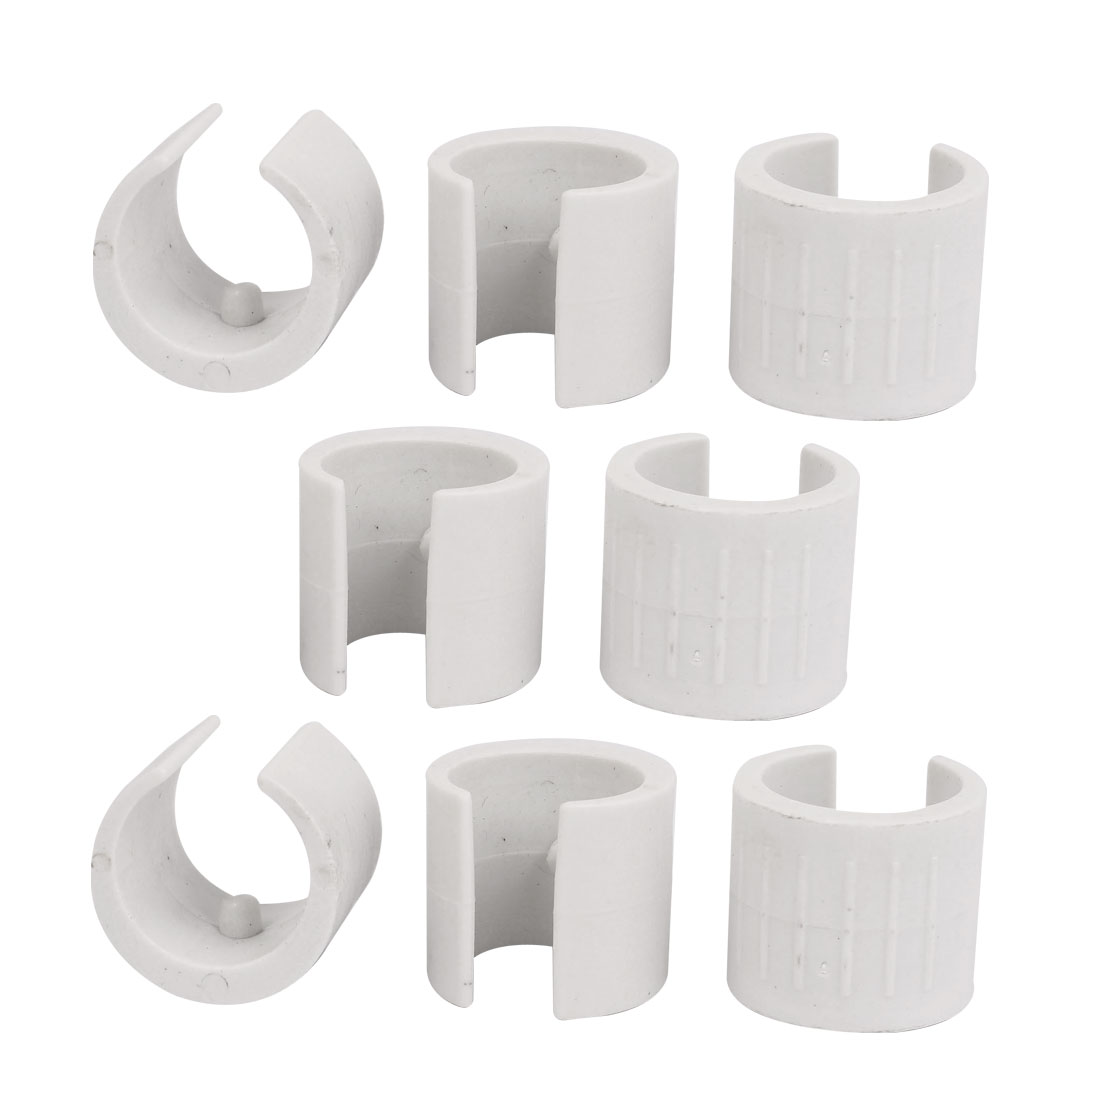 22mm Dia Antislilp Plastic Round Pipe Clamp Foot Pads for Chair 8Pcs White